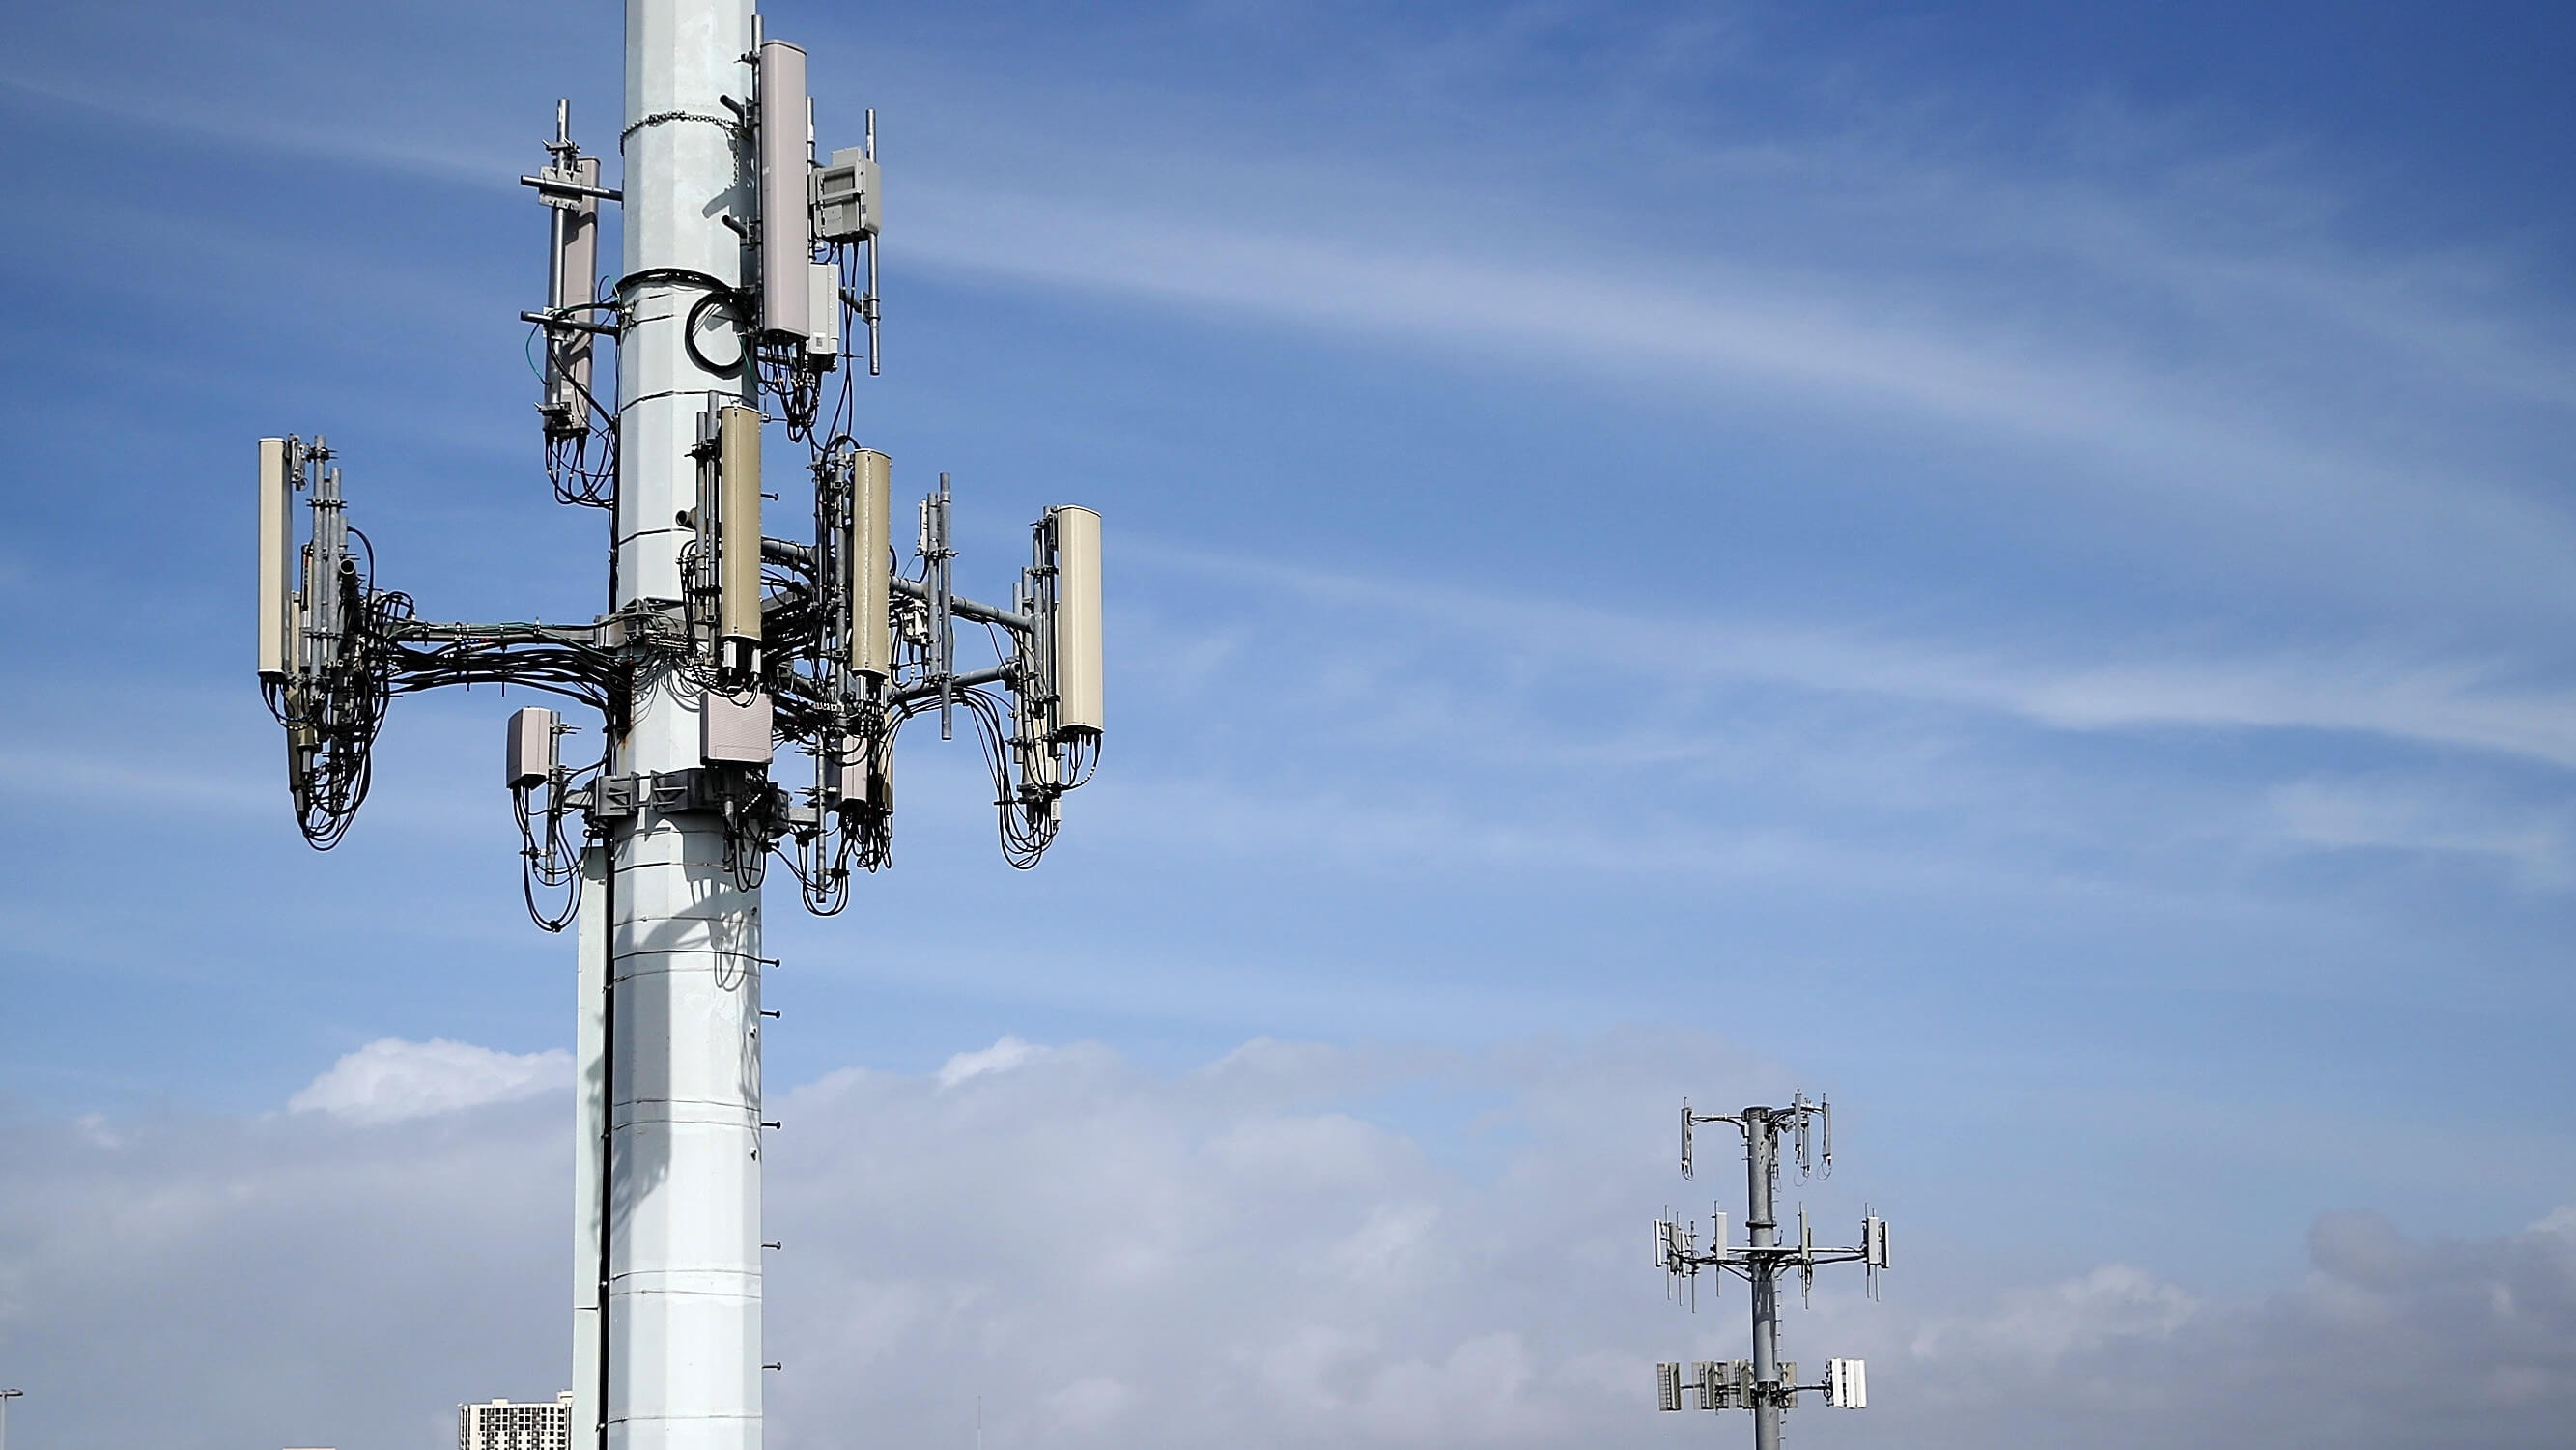 Cellular Communication Towers